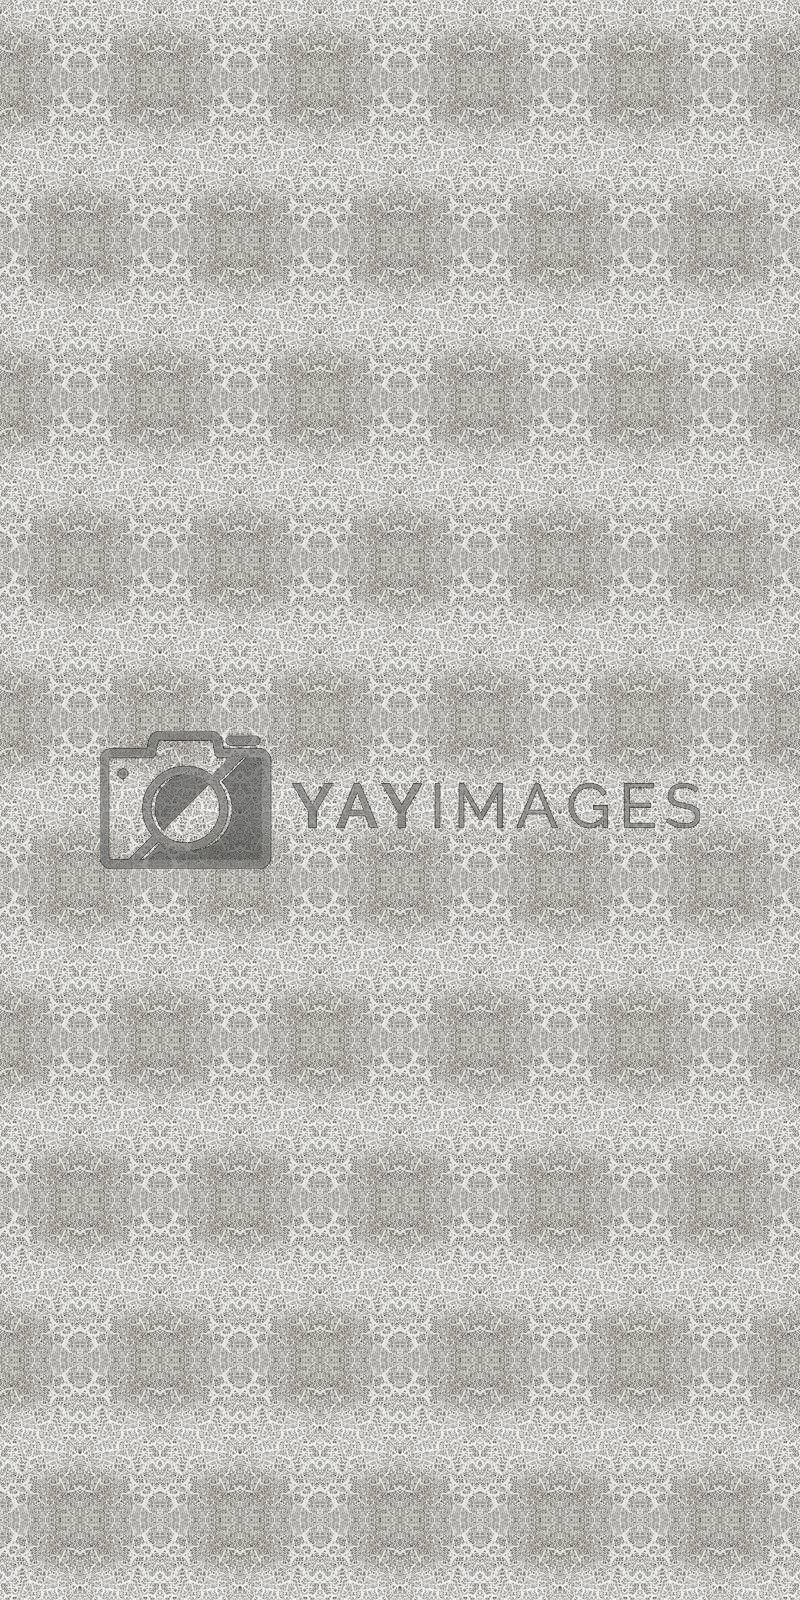 The vintage shabby background with classy patterns